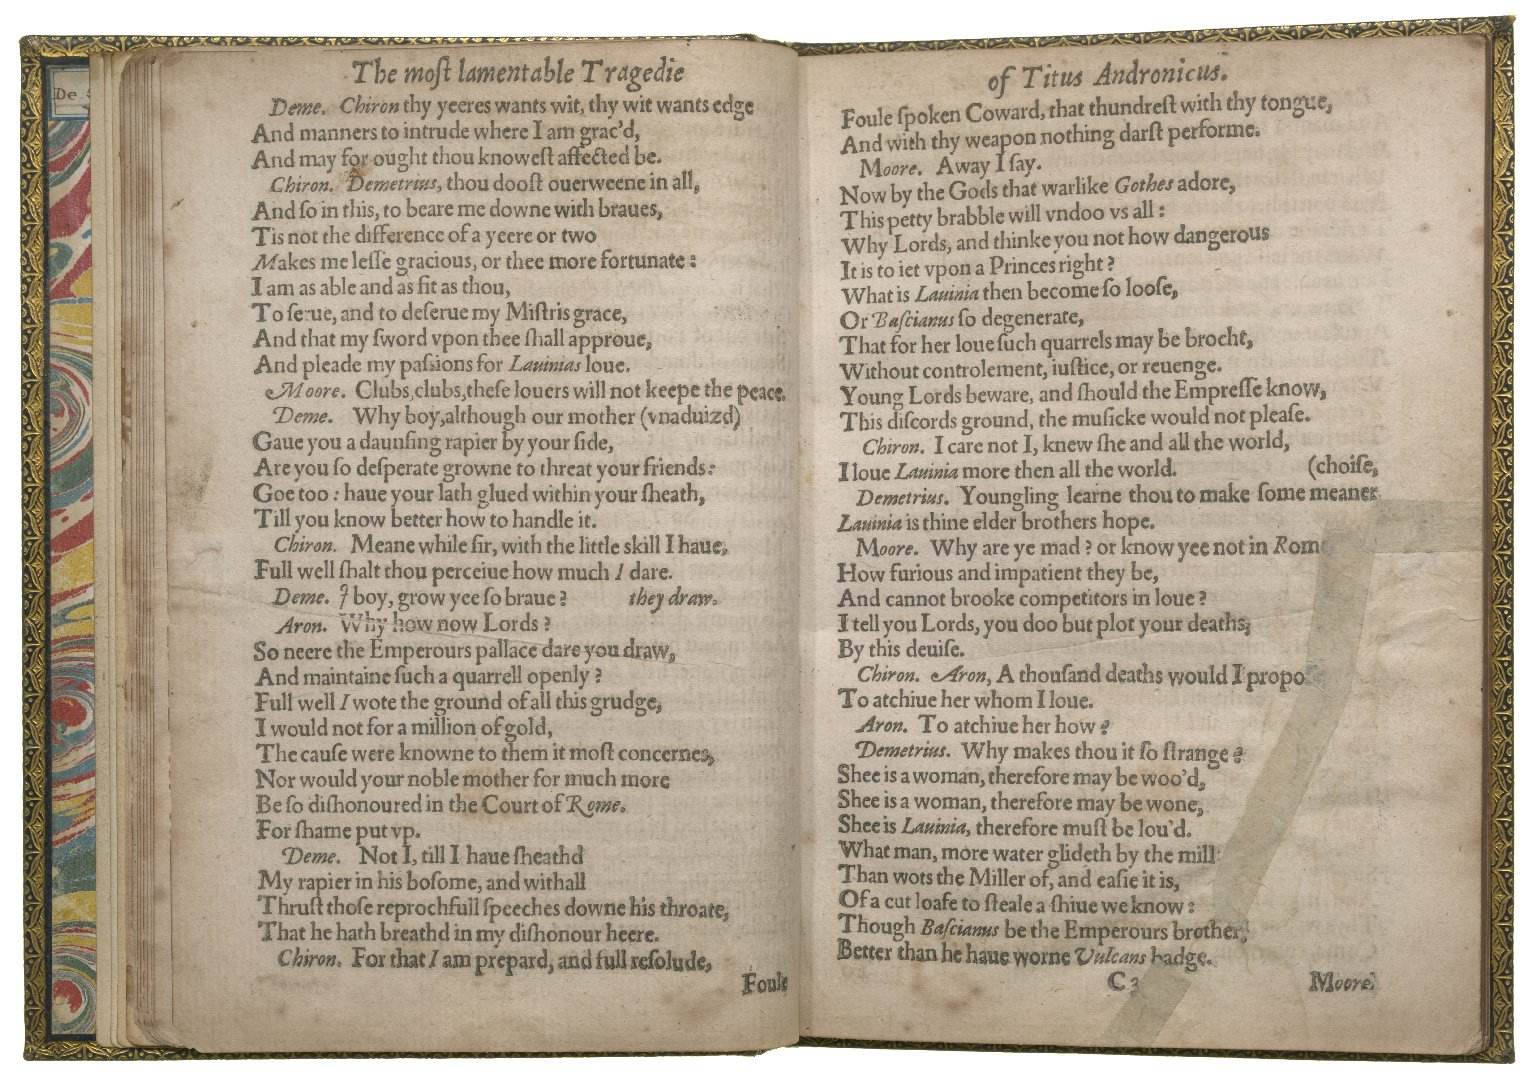 Titus Andronicus, 1600, ff.10v-11r